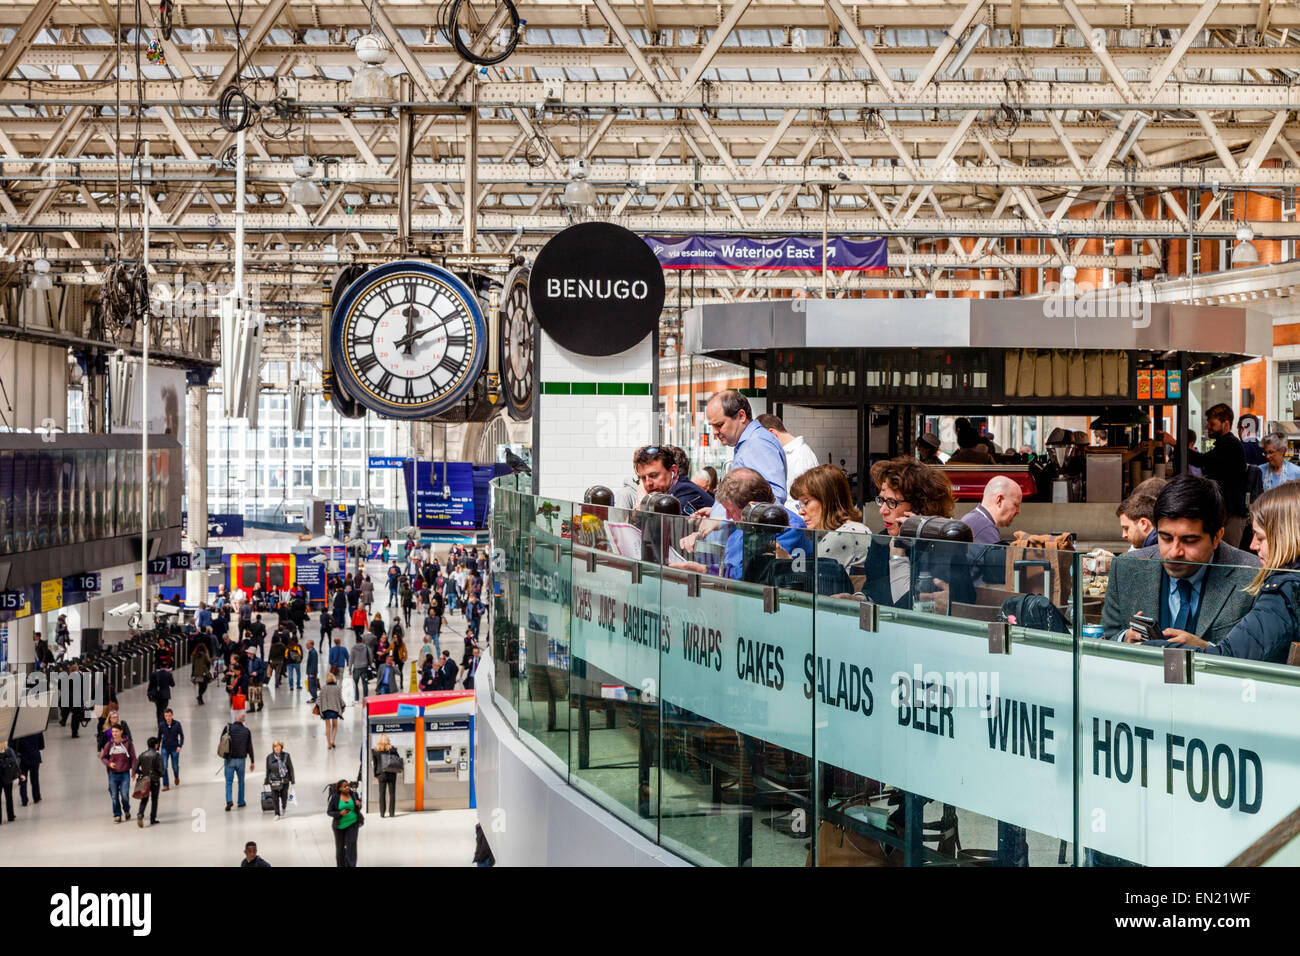 Cafe and Concourse, Waterloo Station, London, England - Stock Image